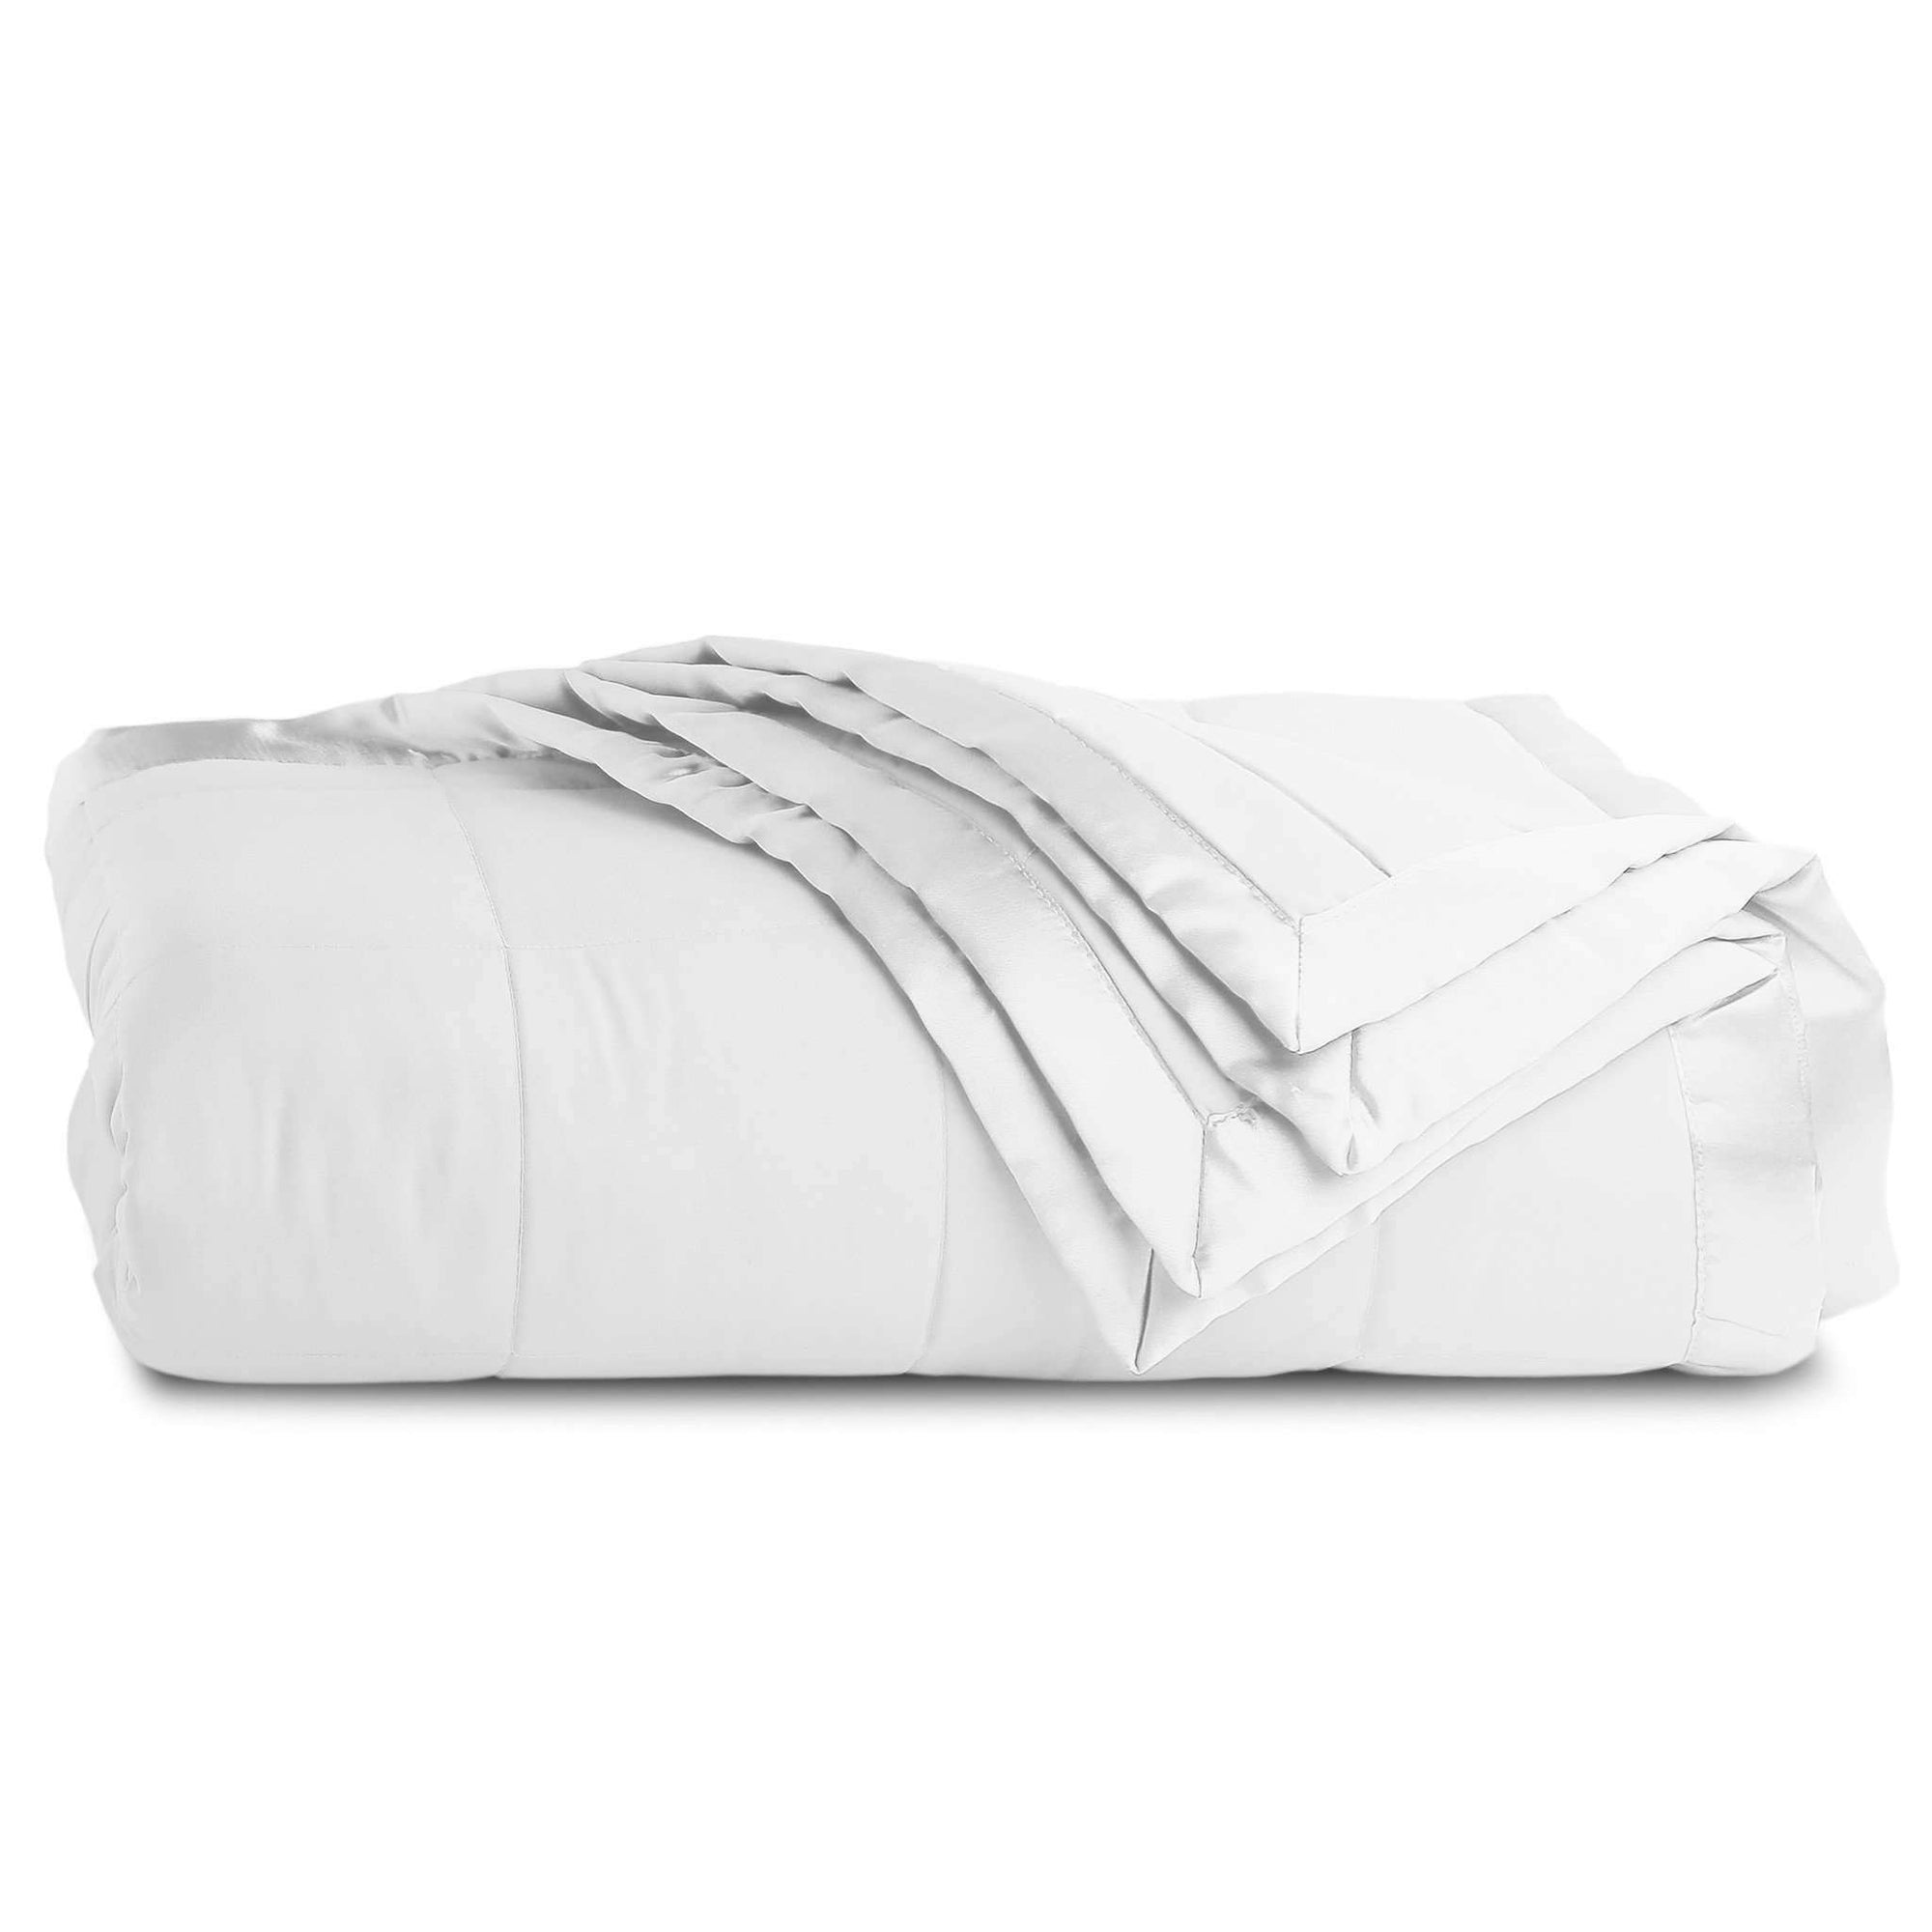 Arosa Hotel Collection Down Alternative Comforter - Luxor Linens